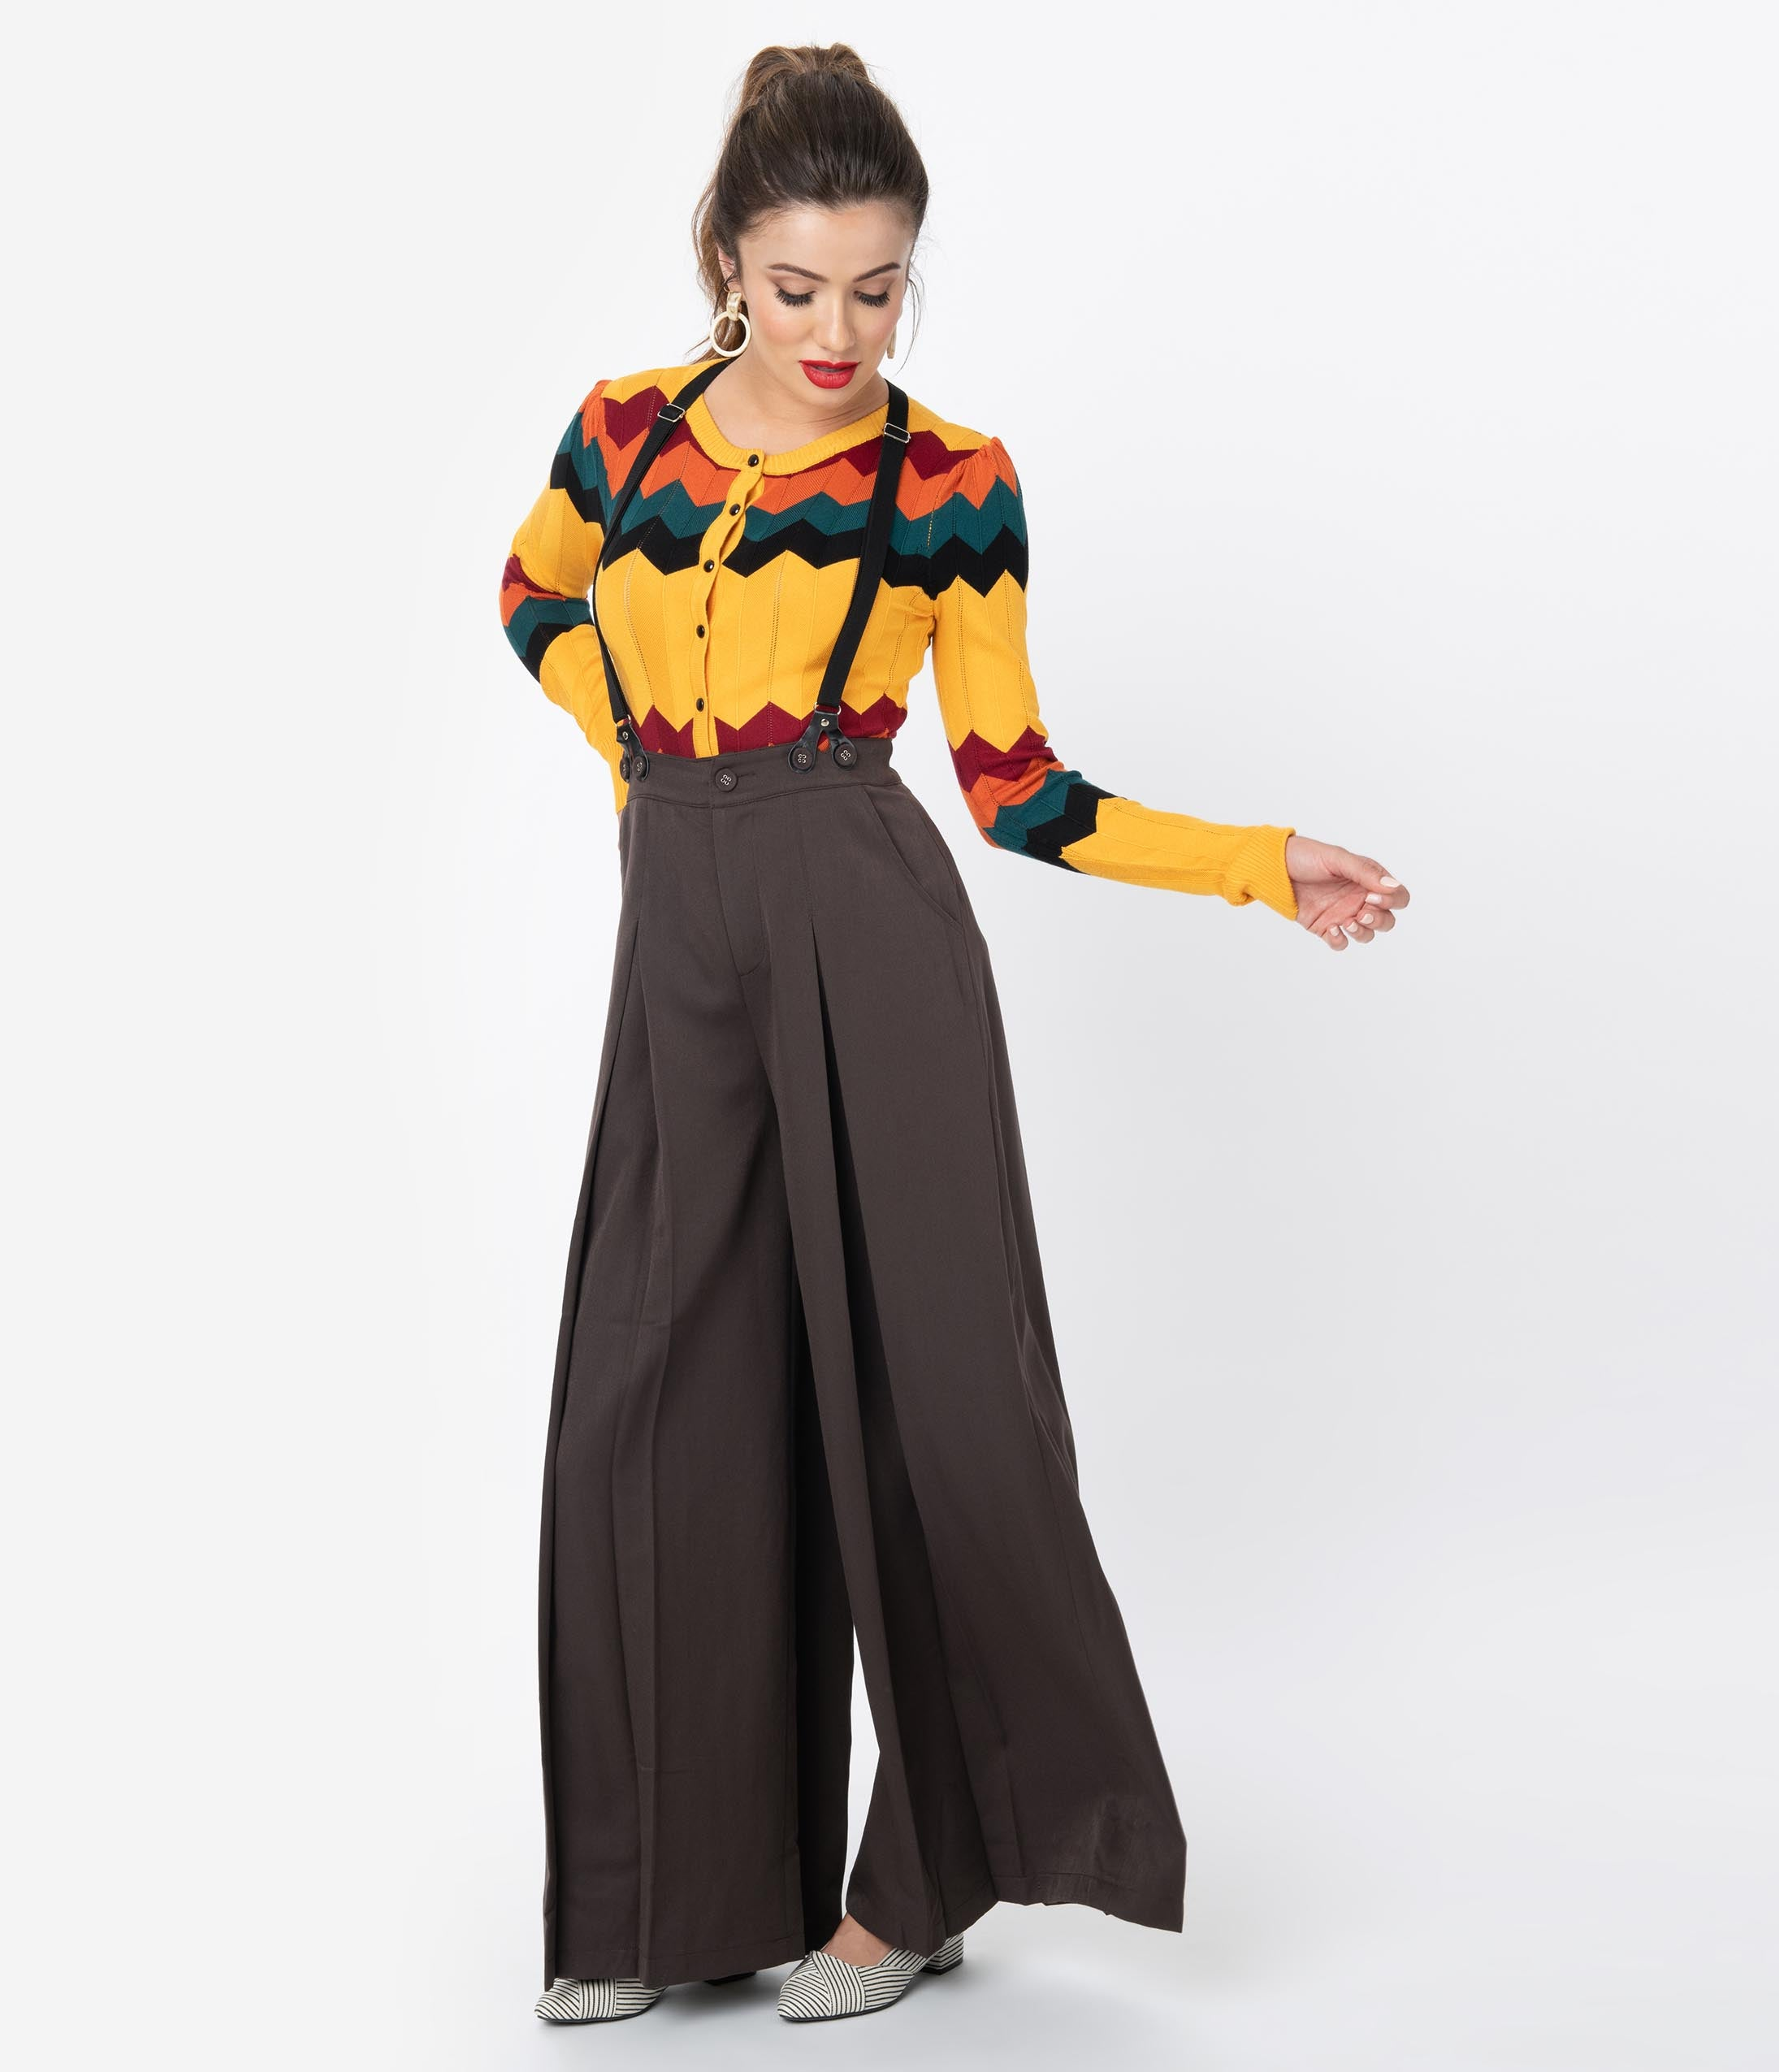 Swing Dance Dresses | Lindy Hop Dresses & Clothing Voodoo Vixen 1940S Style Brown Wide Leg Pleated Suspender Trousers $78.00 AT vintagedancer.com